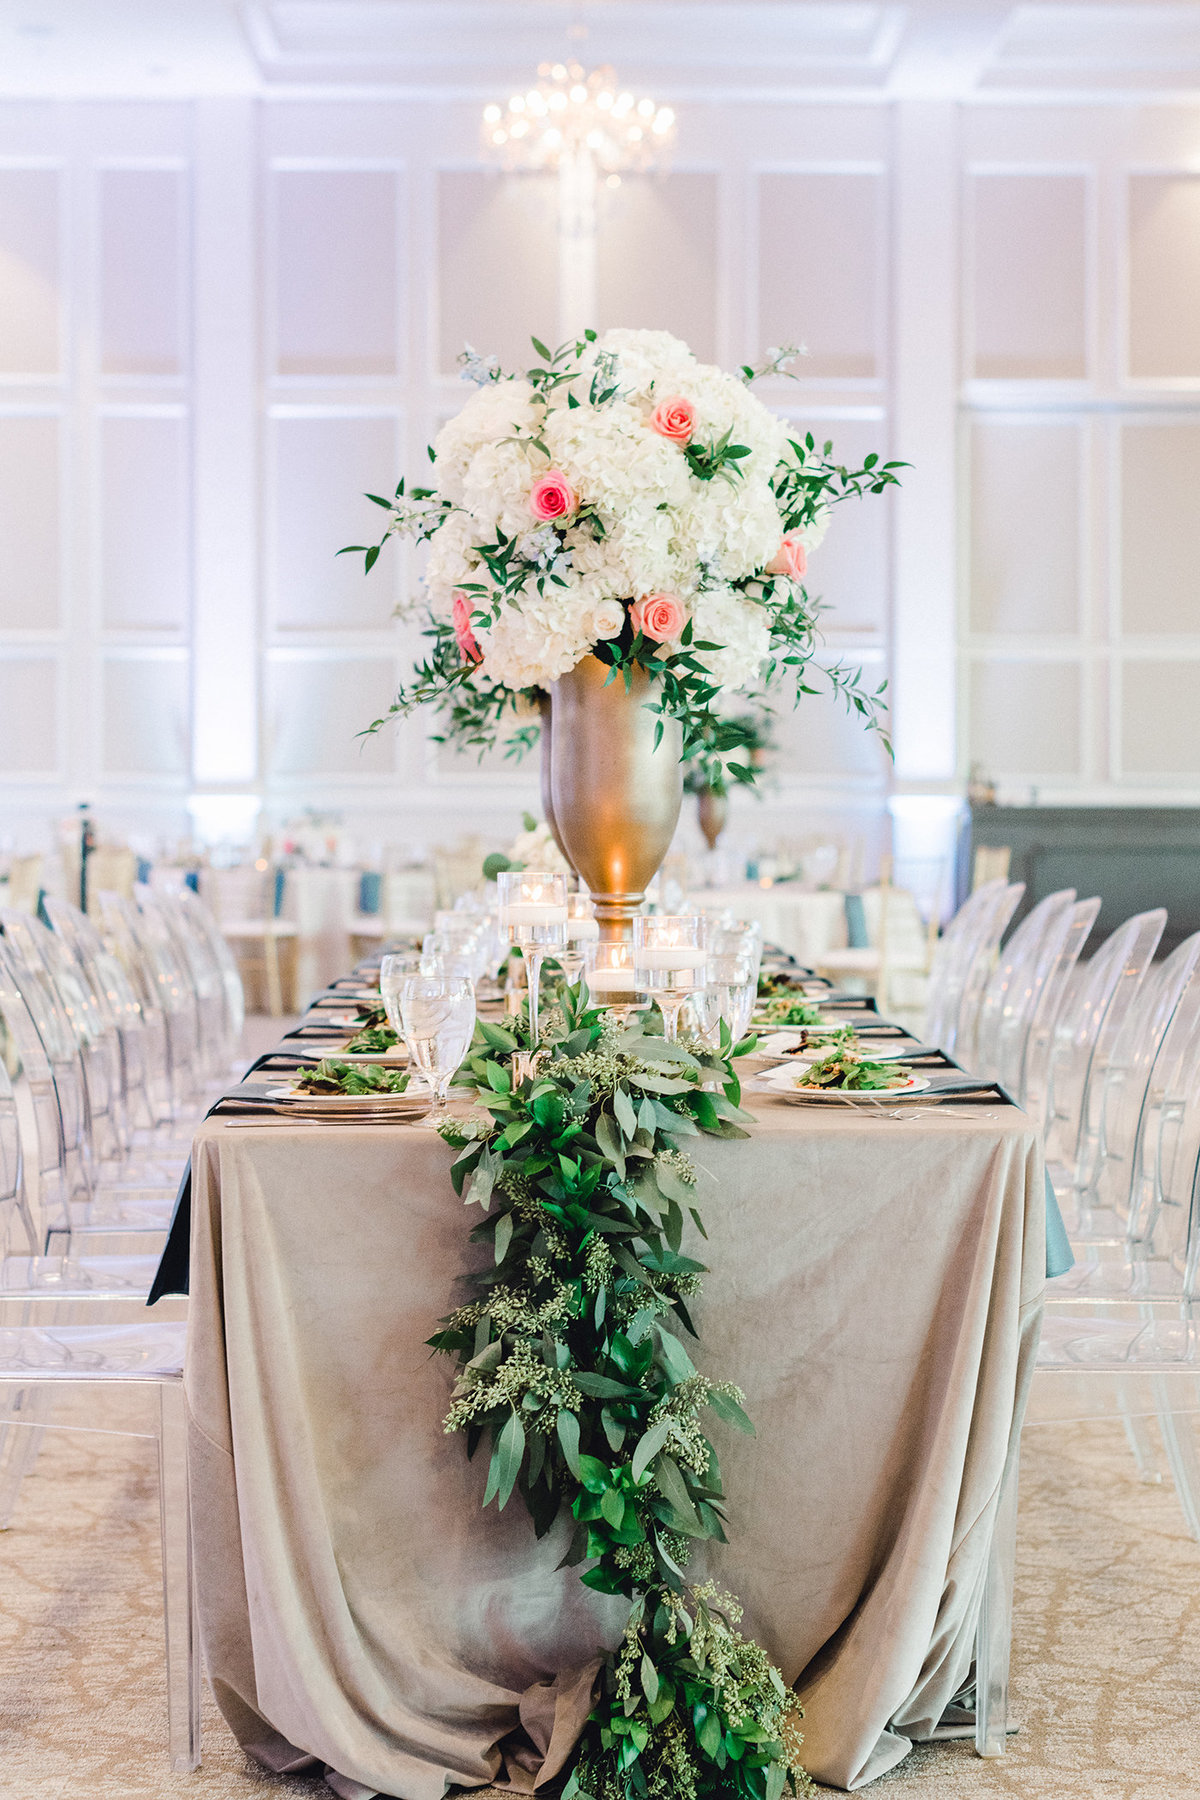 Dallas Wedding Floral Design - A Stylish Soiree - Dallas Wedding Florist - 449